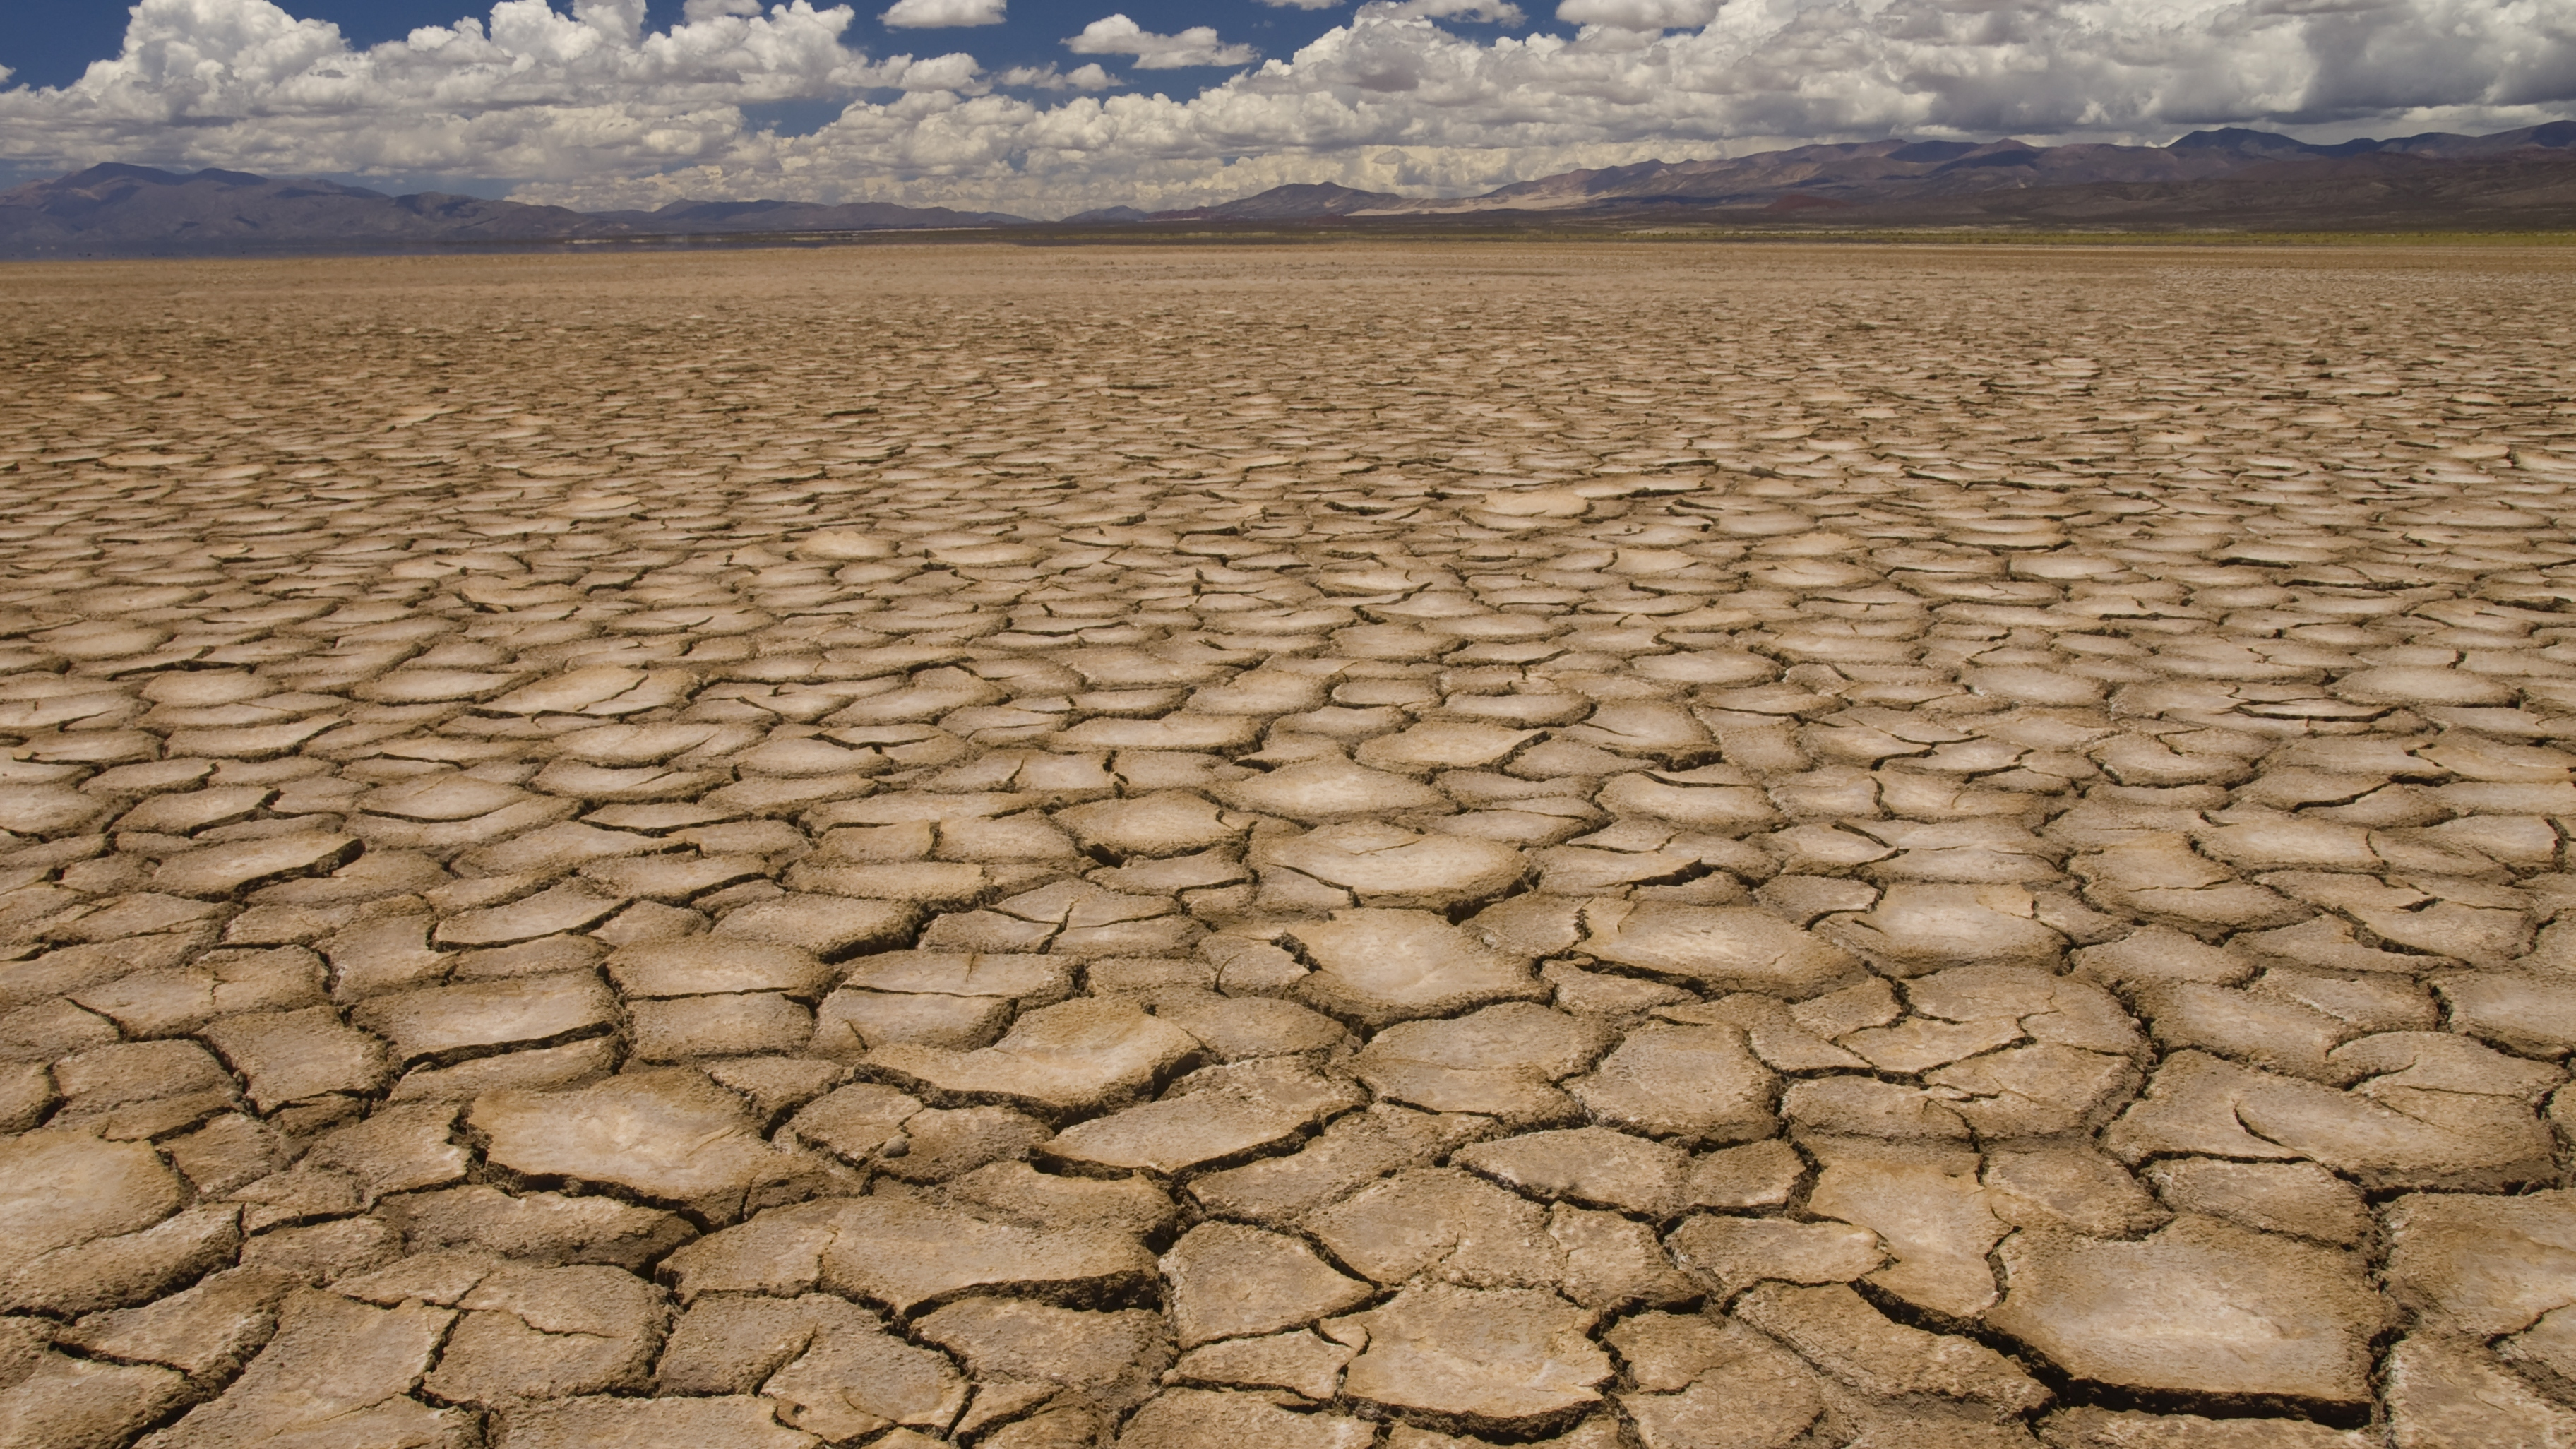 Droughts and heatwaves